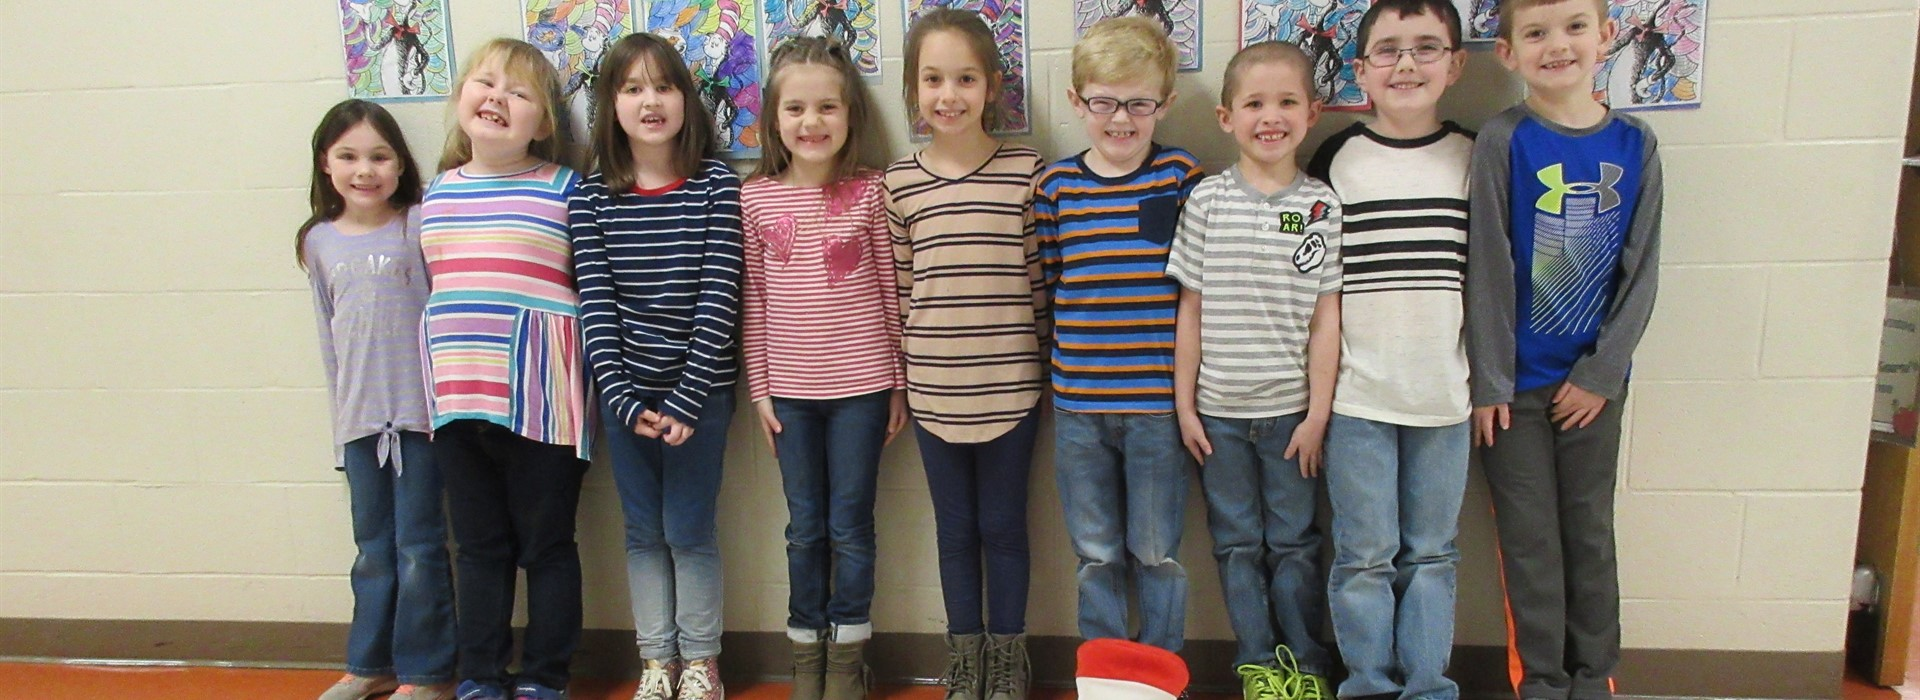 Silly Seuss Smiles in Stripes in Mrs. Kern's Class.